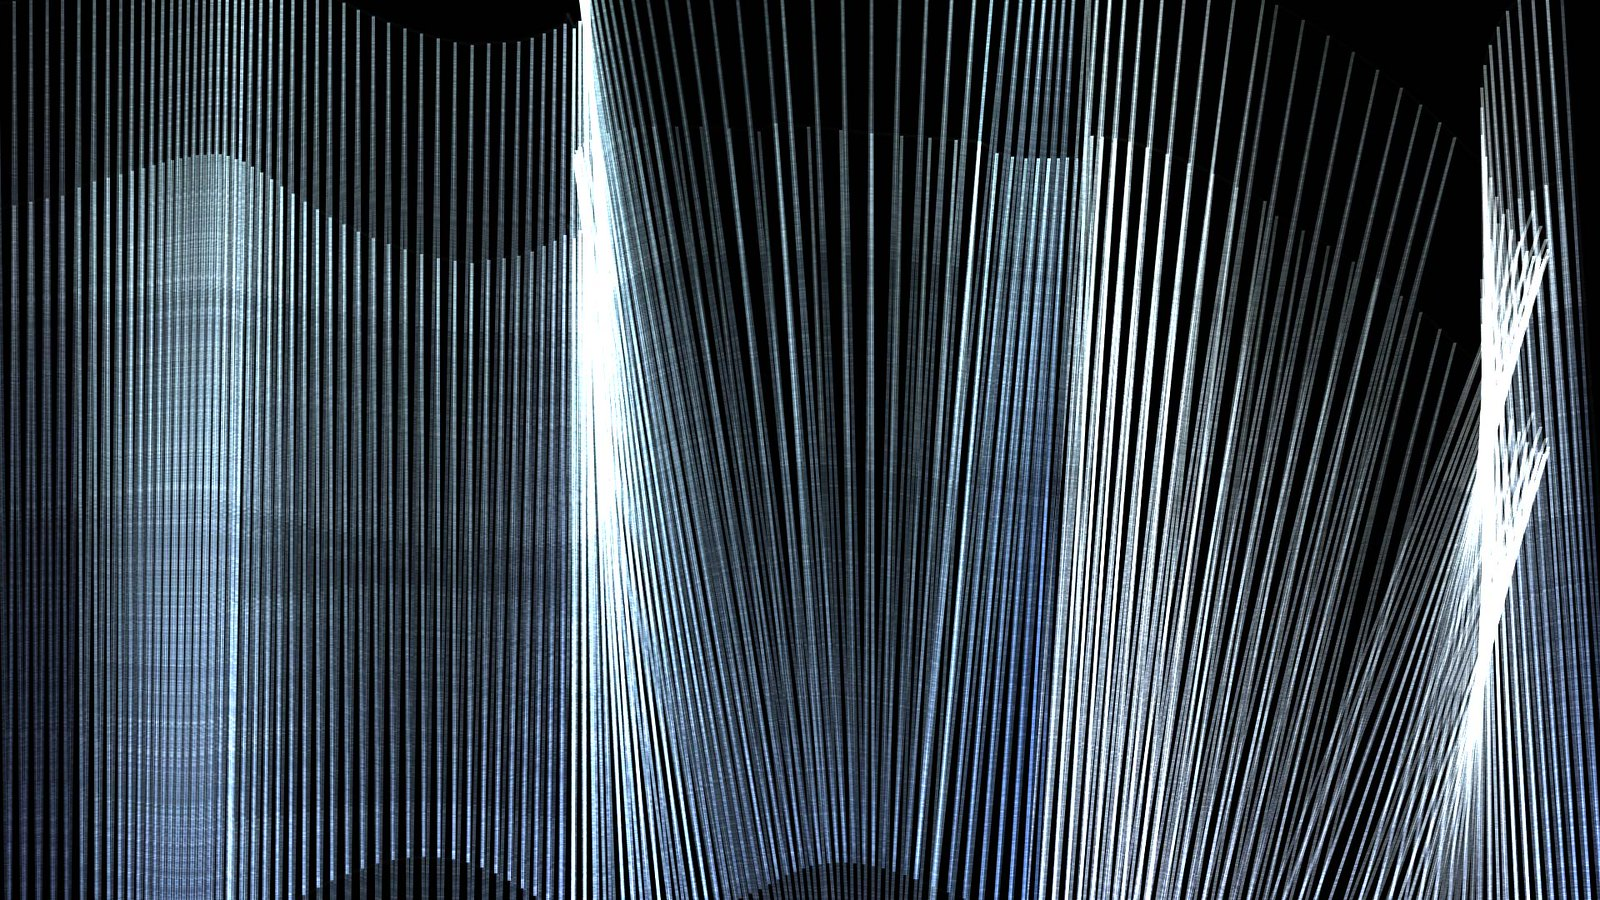 CrippledSymmetry_01 All Lines